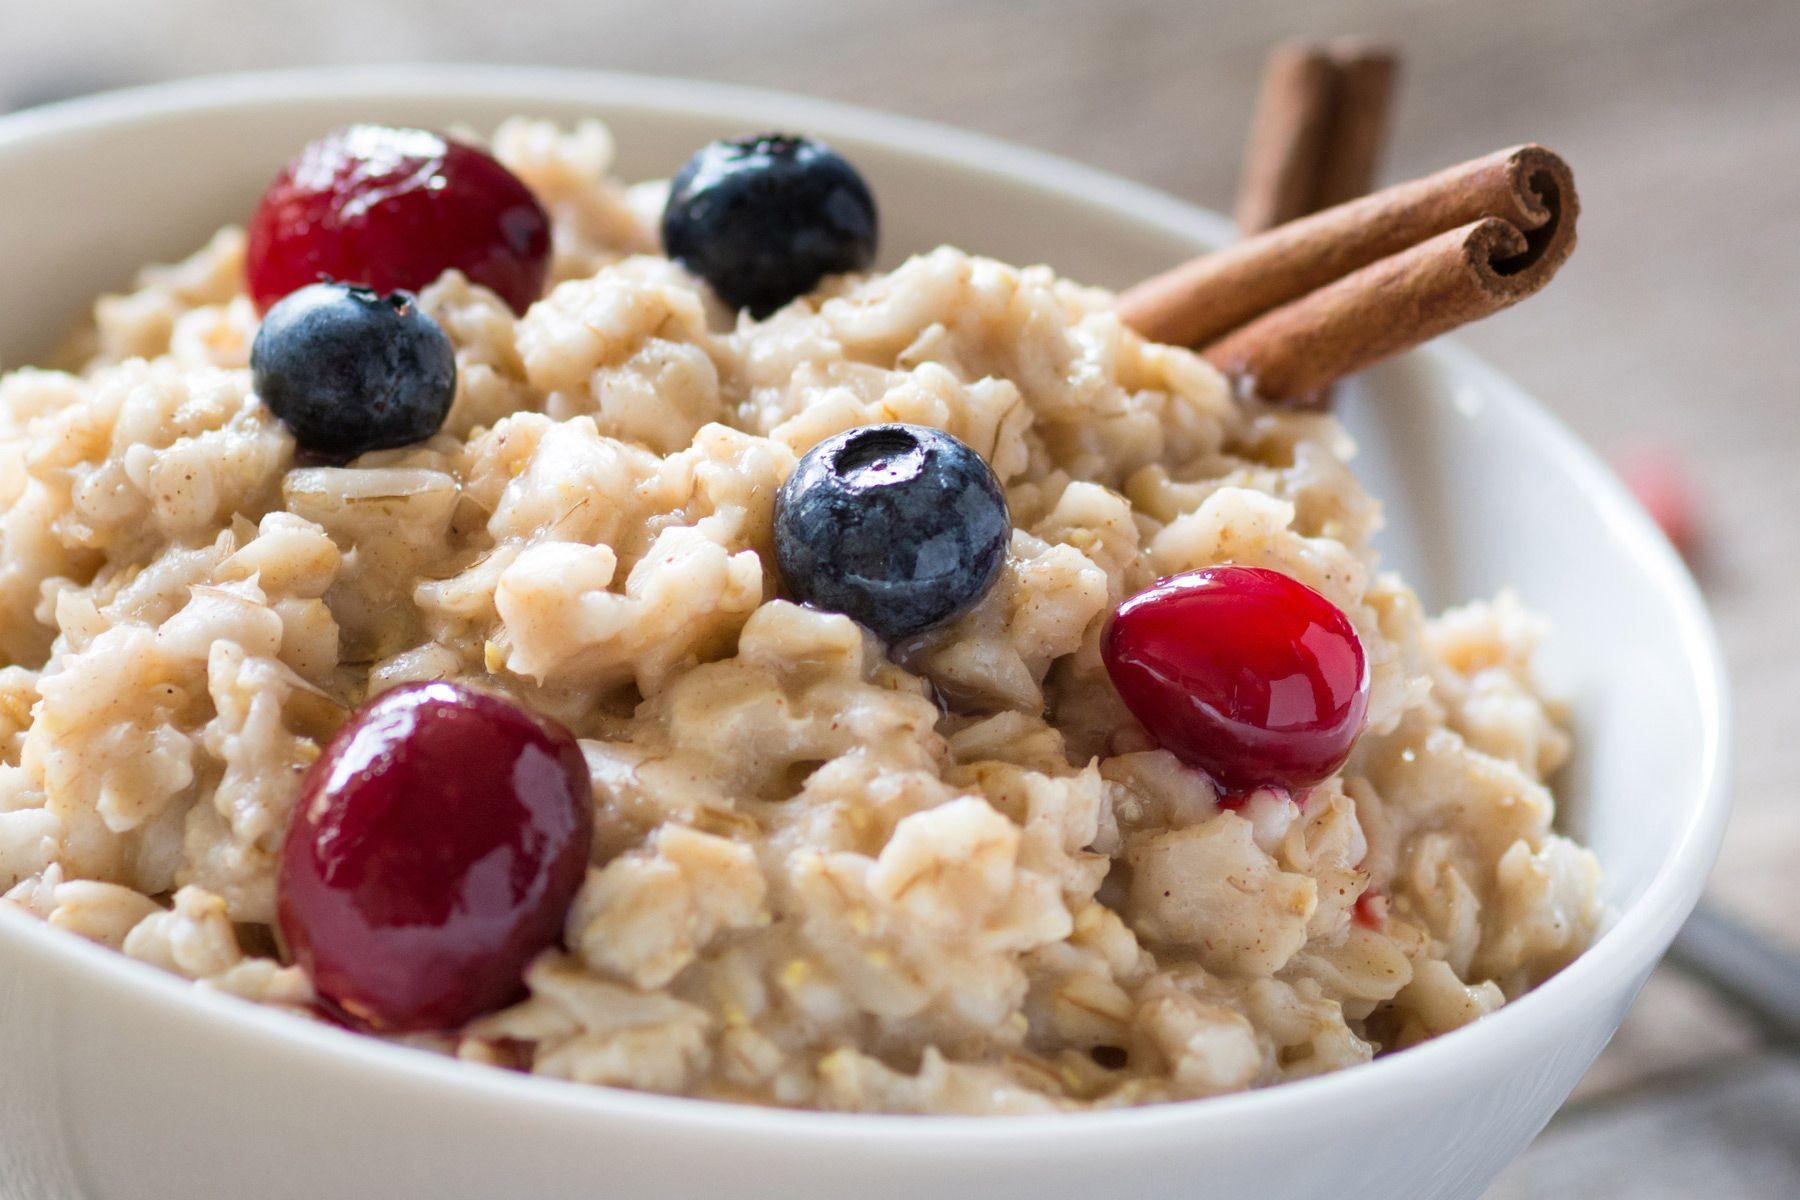 Oatmeal: Nutrition, Benefits, Types, Toppings